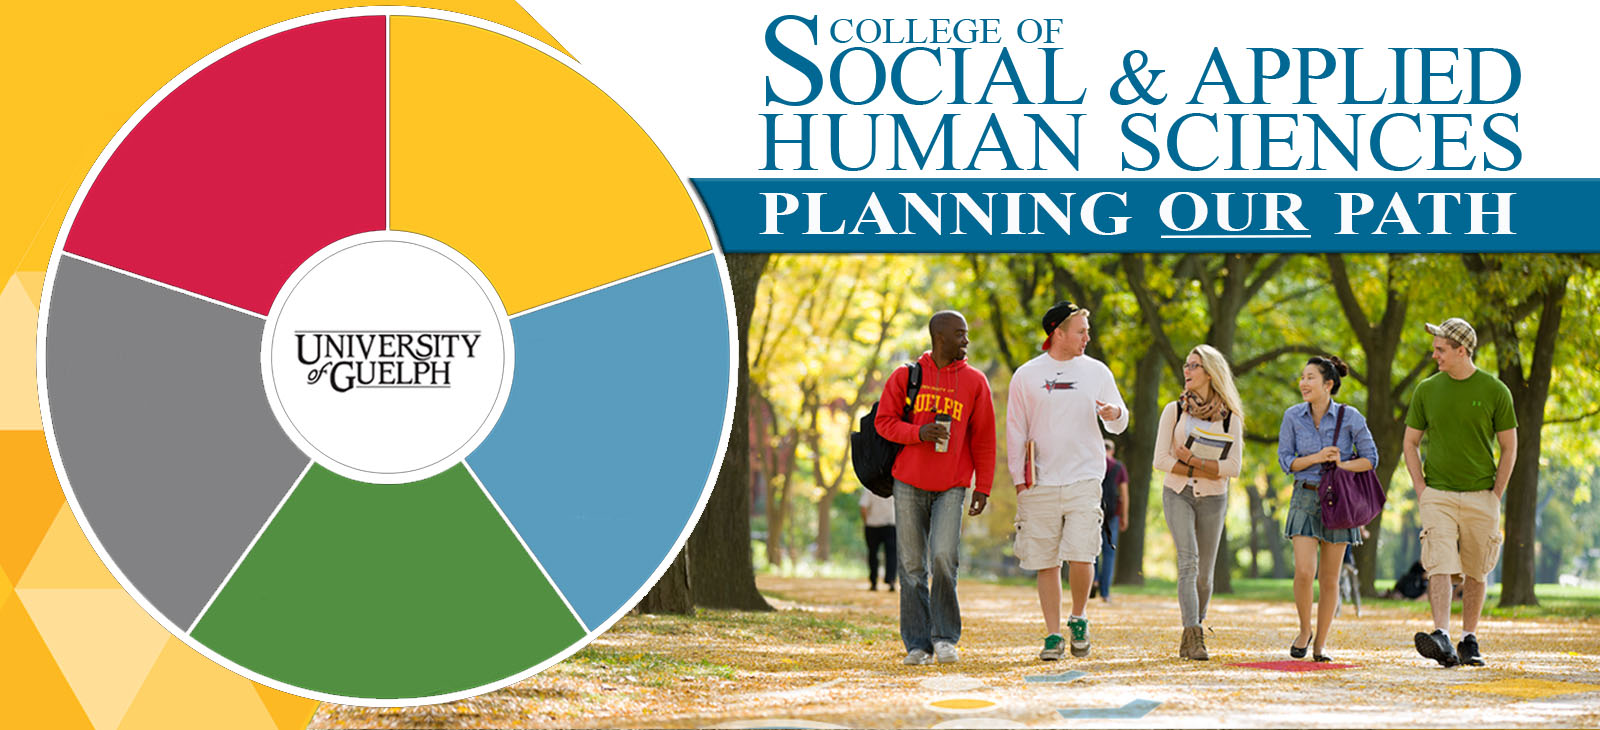 "CSAHS Strategic Planing Image - ""College of Social and Applied Human Sciences - Planning our Path"""